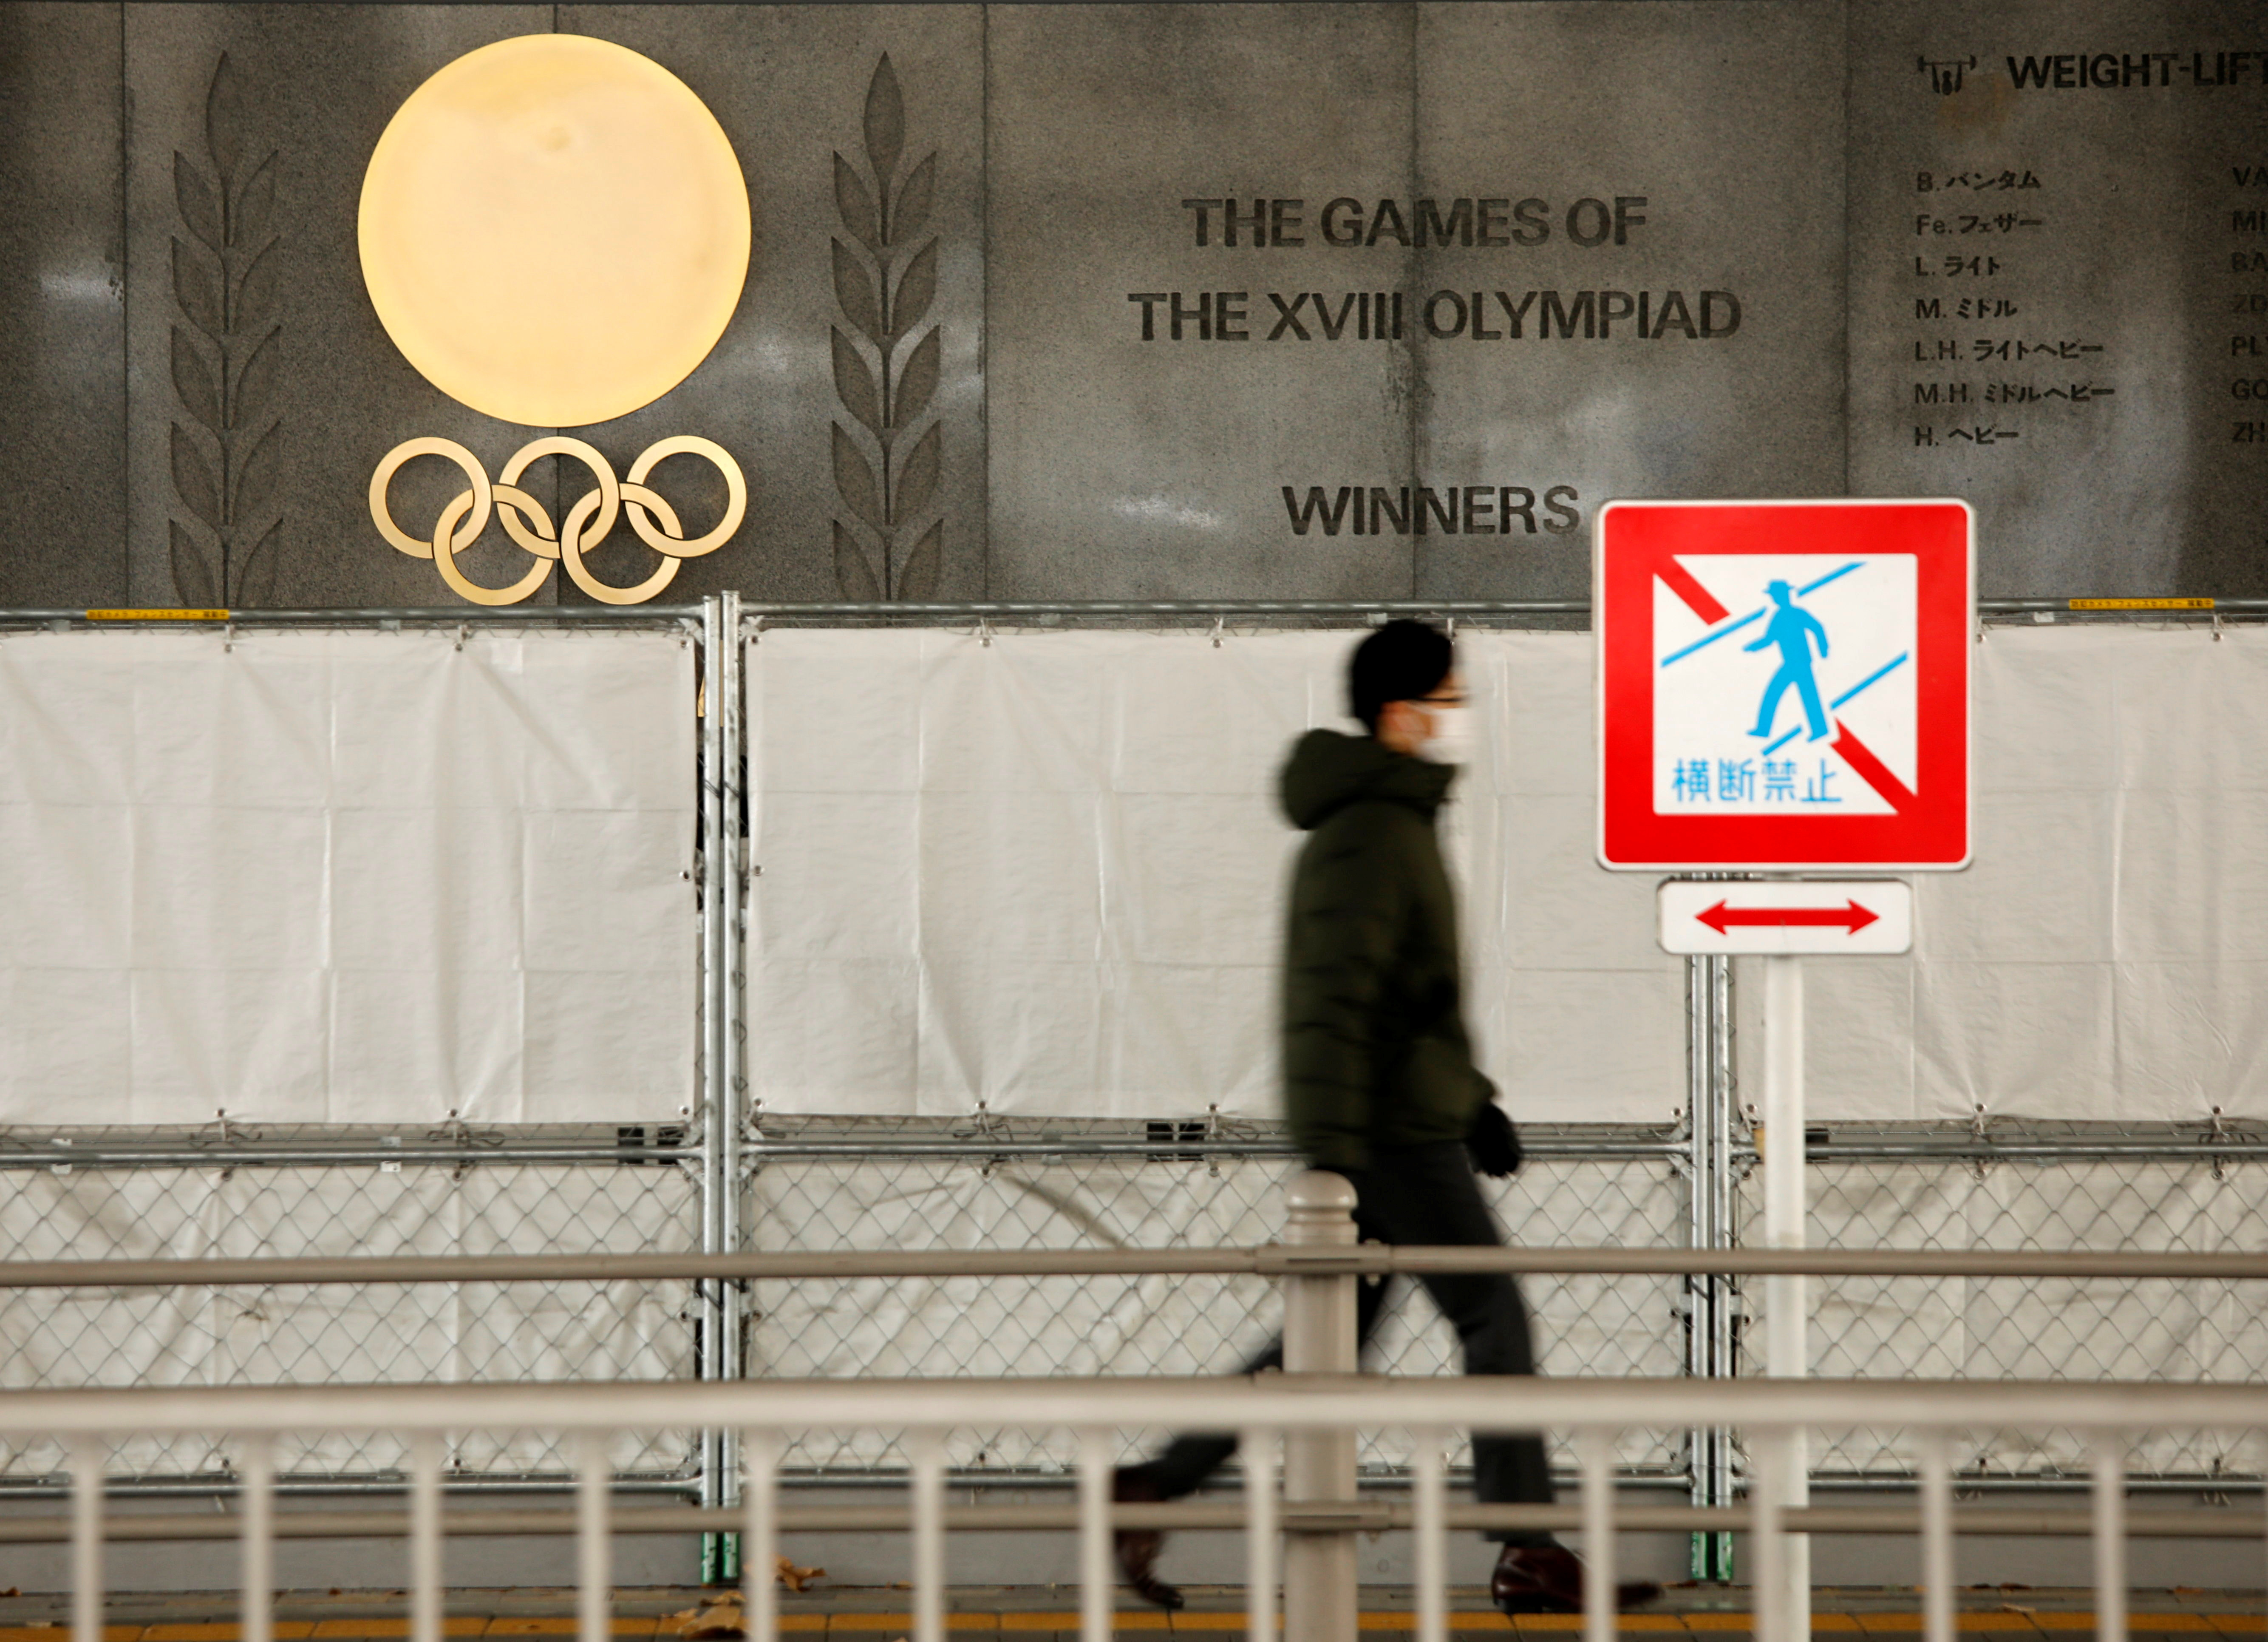 Olympic rings are seen outside the National Stadium, the main venue for the 2020 Olympic and Paralympic Games in Tokyo, Japan January 8, 2021.  REUTERS/Issei Kato